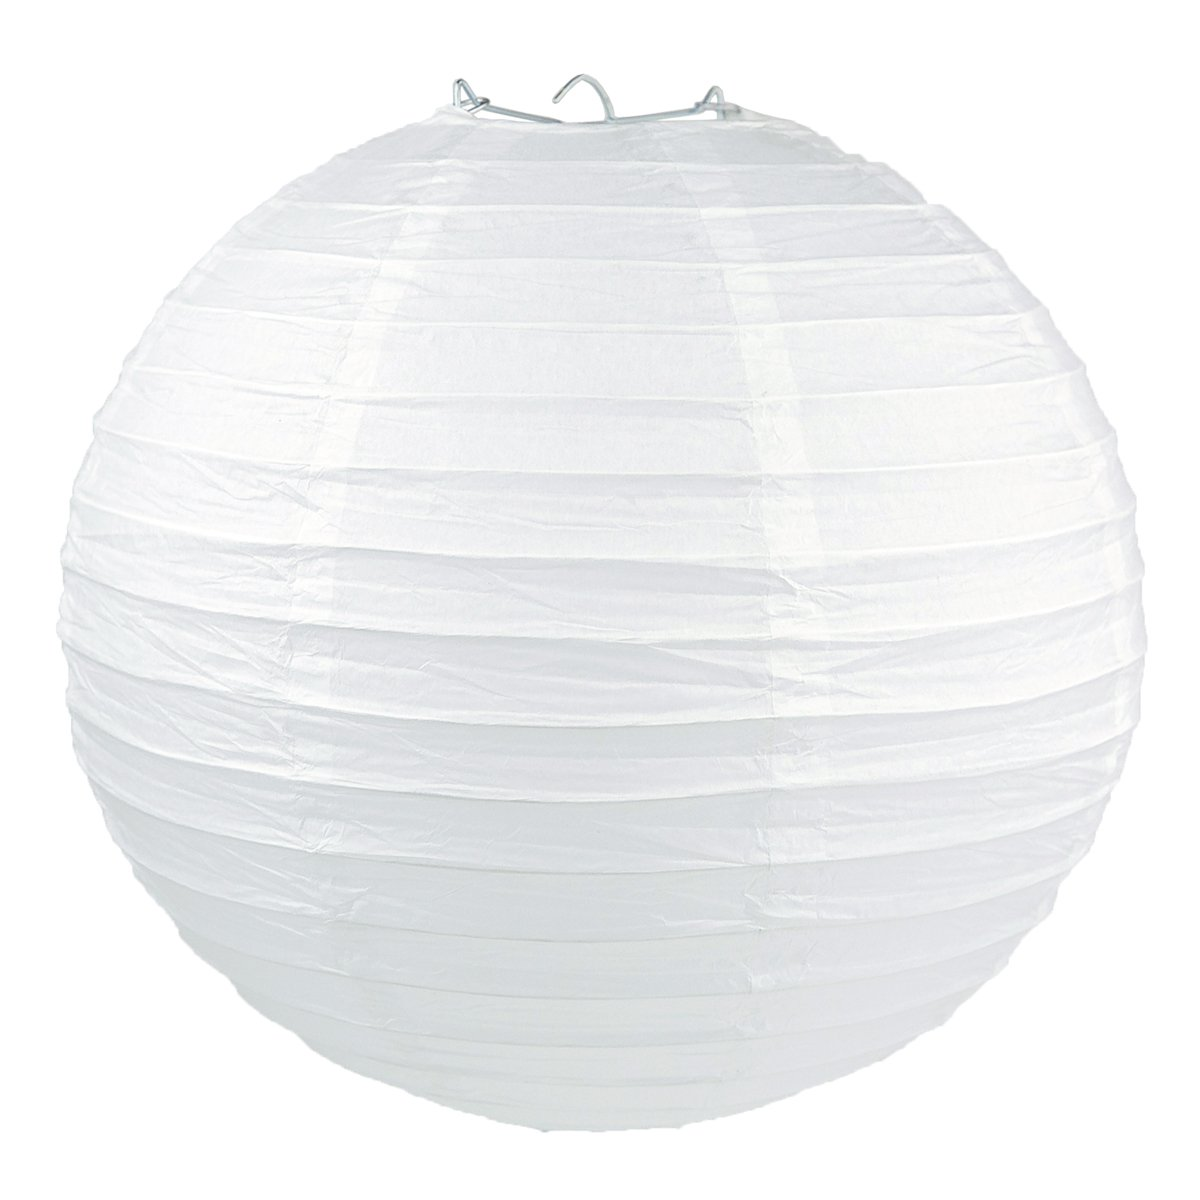 "WYZworks Round Paper Lanterns 10 Pack (White, 12"") - with 8"", 10"", 12"", 14"", 16"" option"